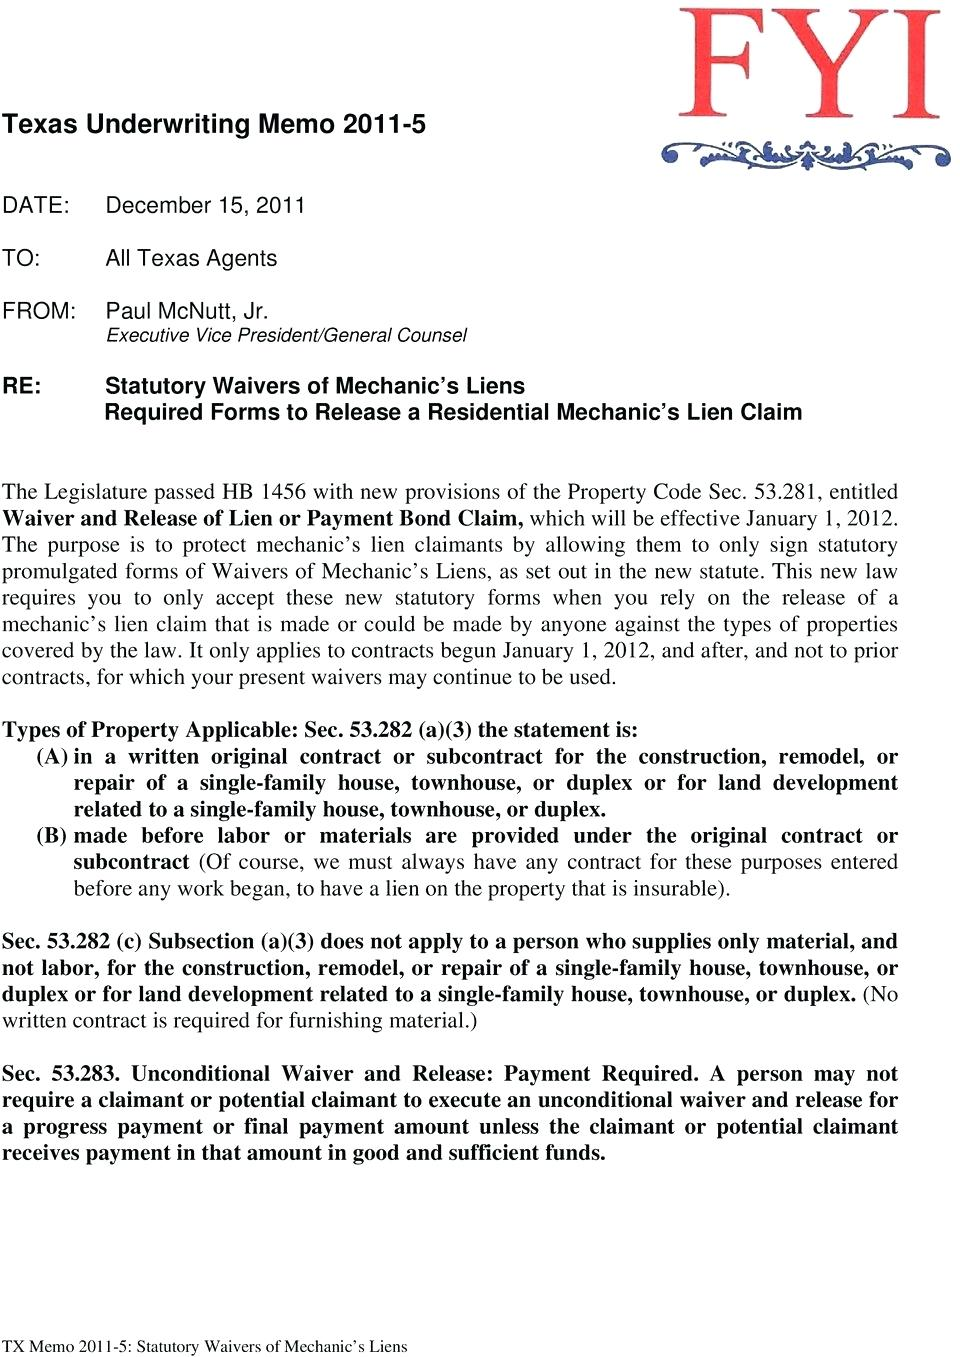 Waiver And Release Of Lien Form Florida